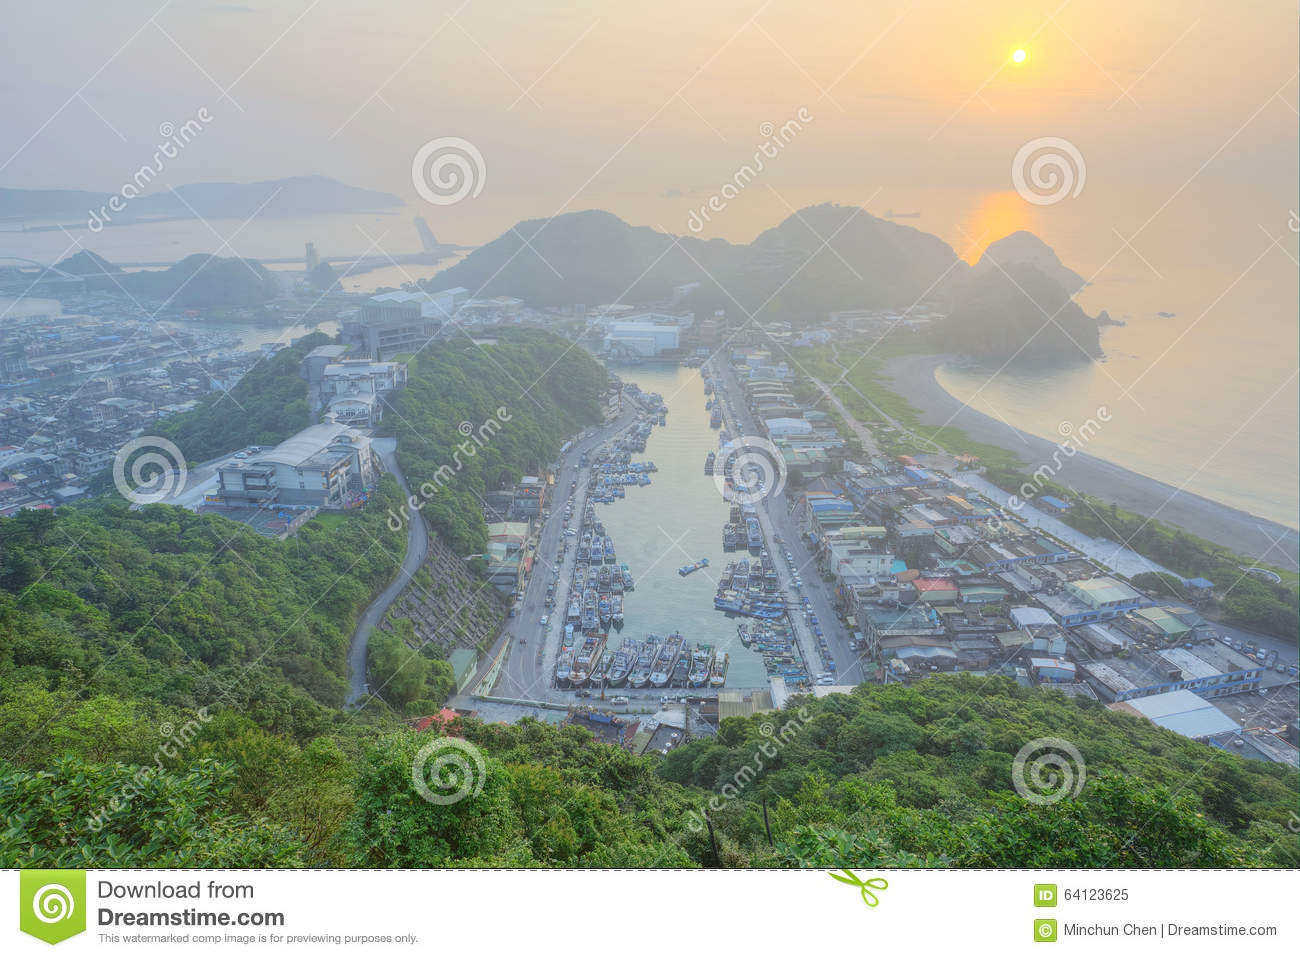 Aerial view of a fishing village at dawn on northern coast of Taipei Taiwan